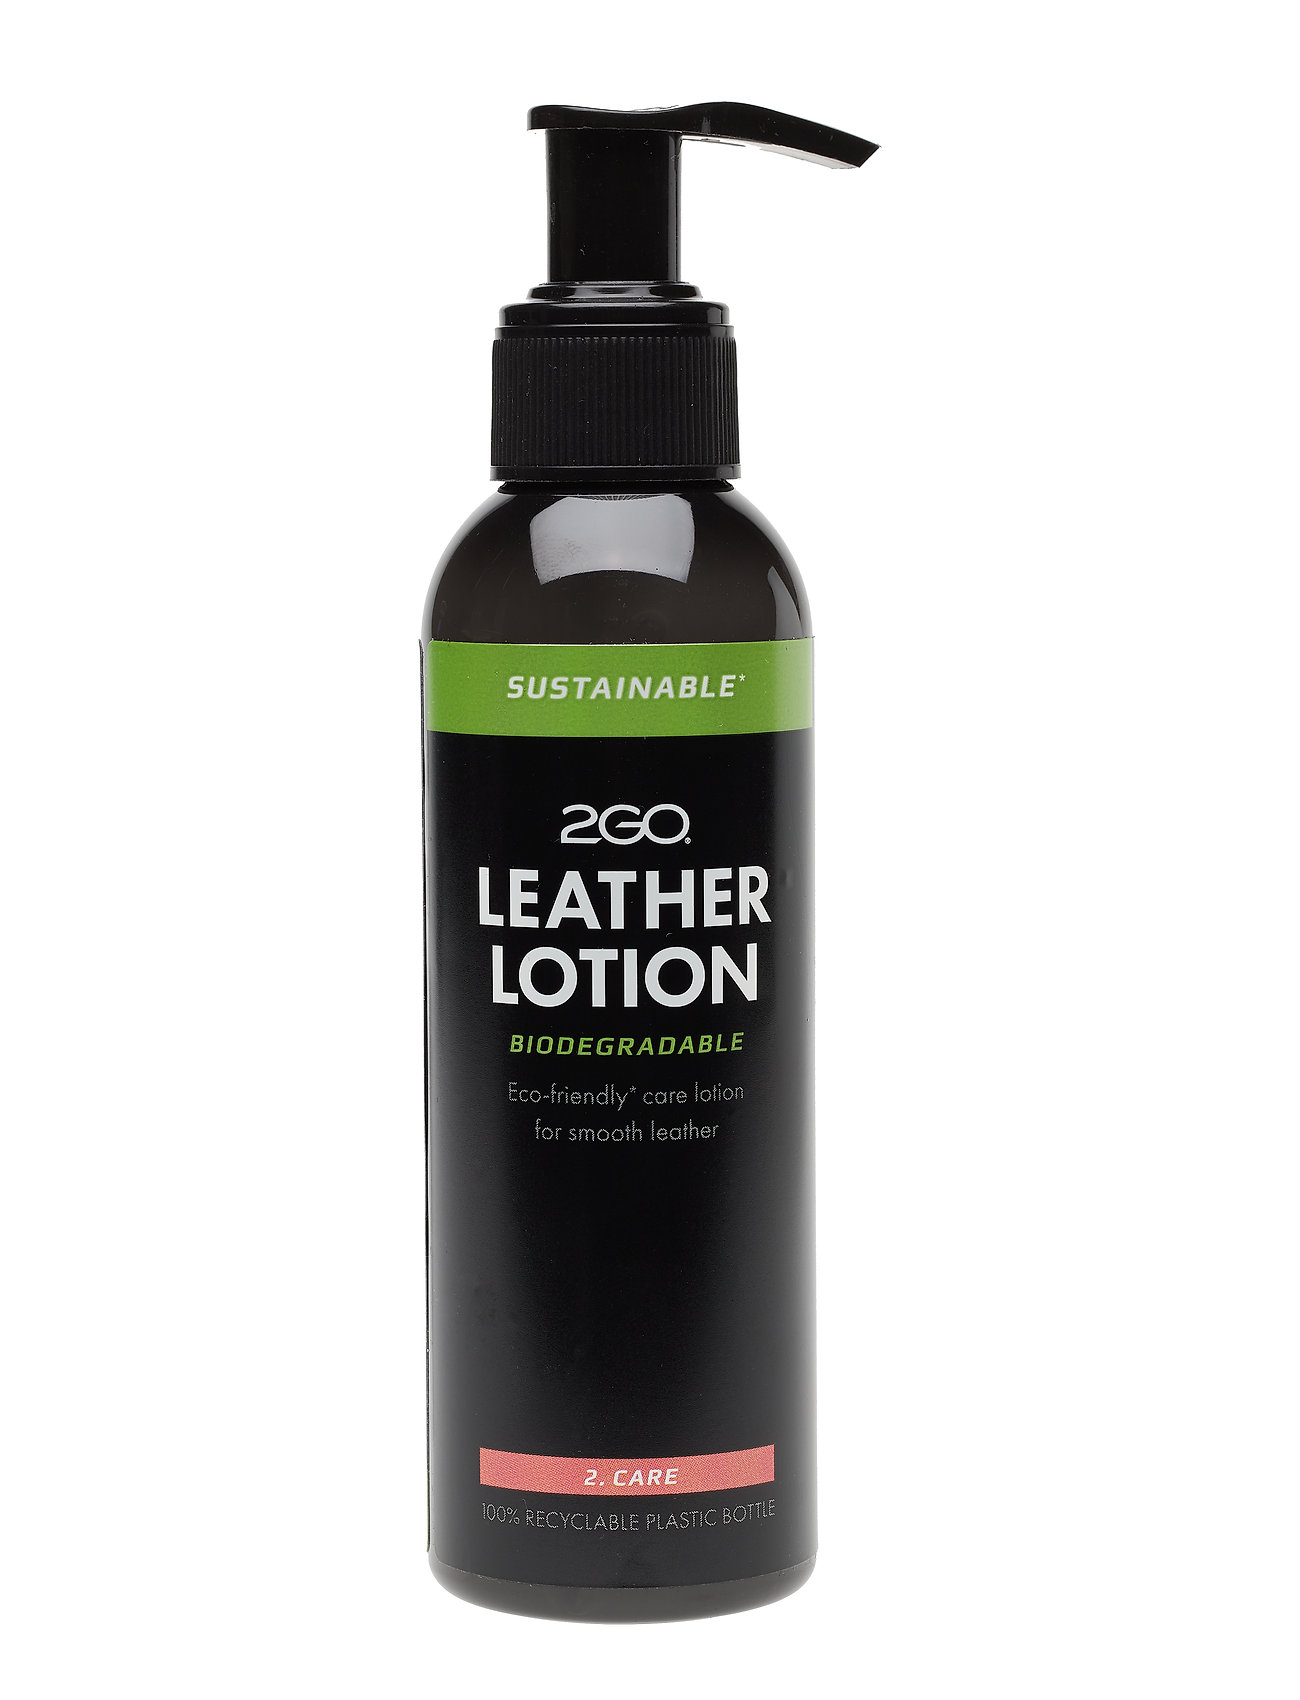 Image of 2go Sustainable Leather Lotion Skopleje 2GO (3409250517)